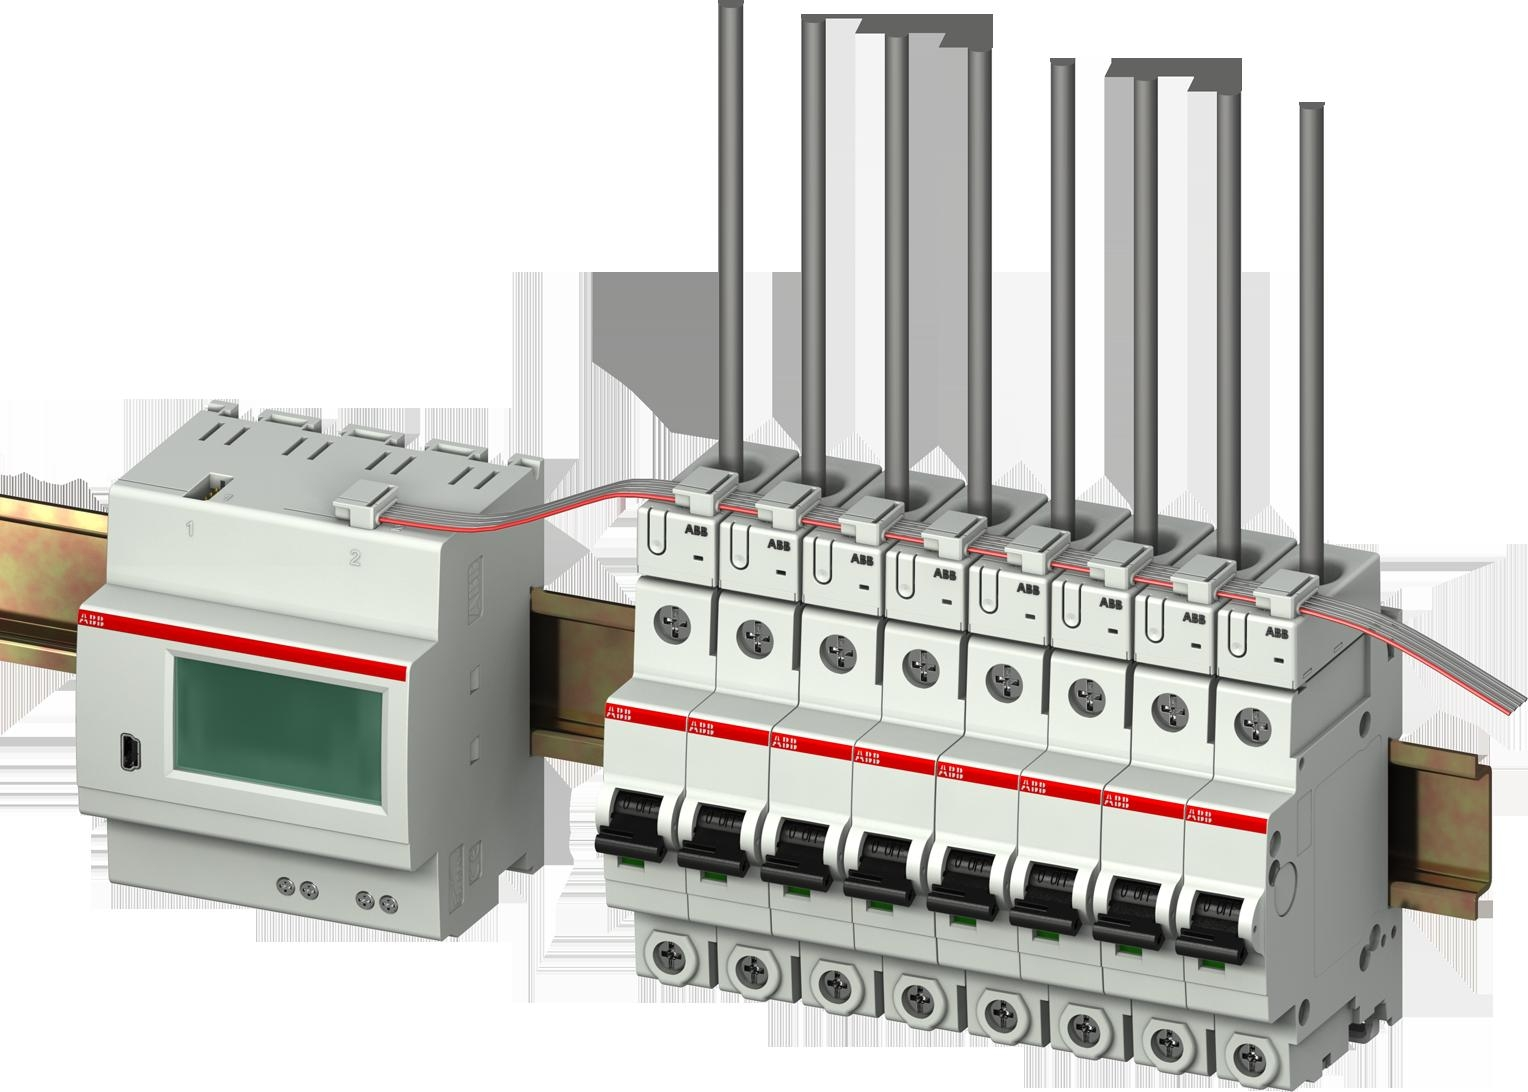 Current Monitoring System : Abb current measurement system electrical connection